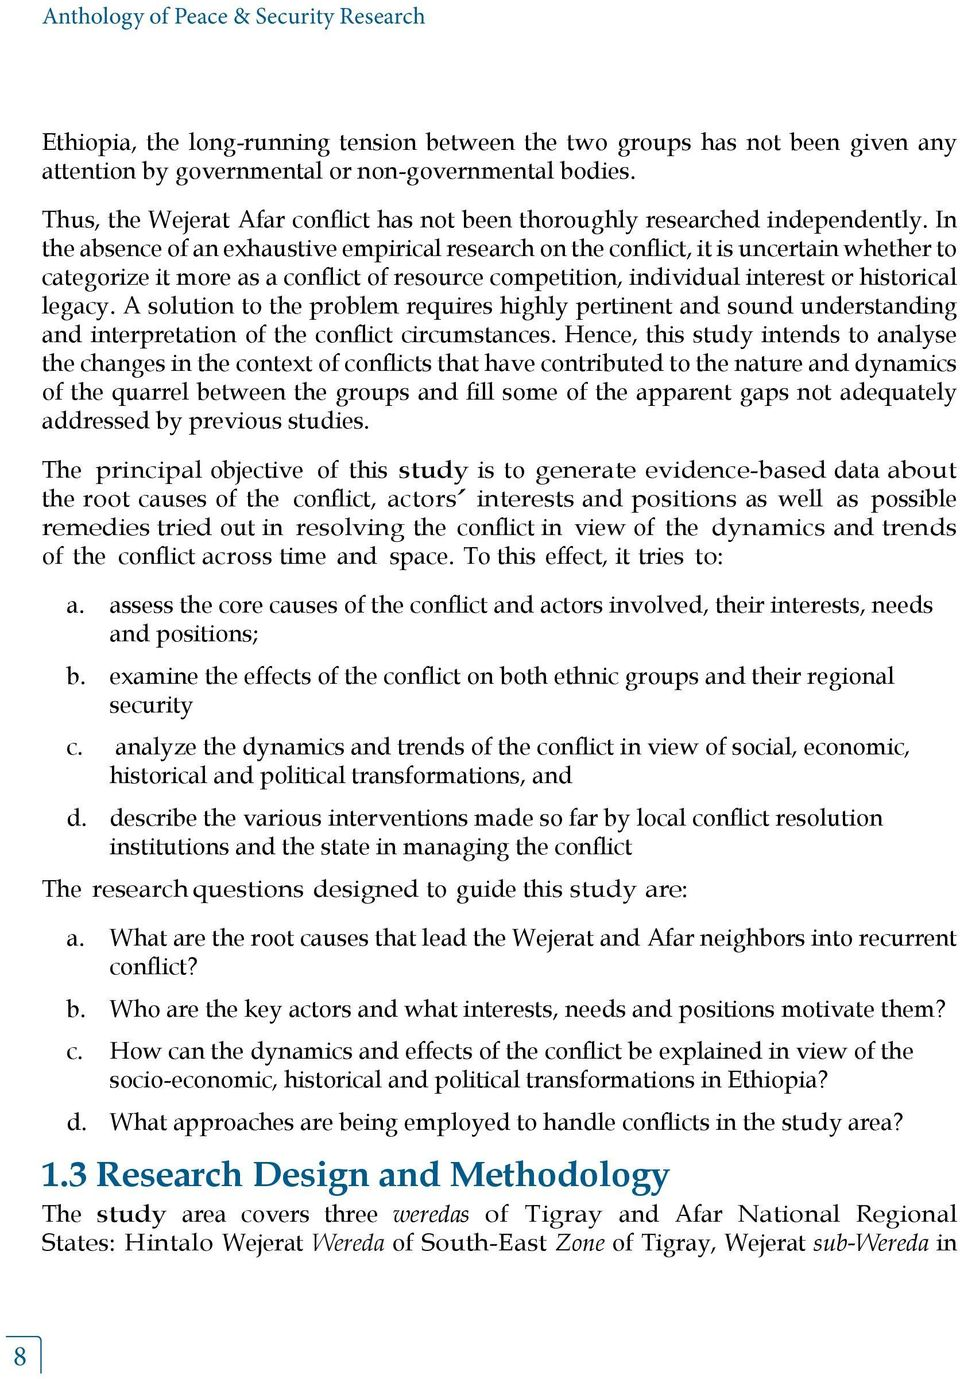 Research questions for master's course in Conflict Resolution & Governance?